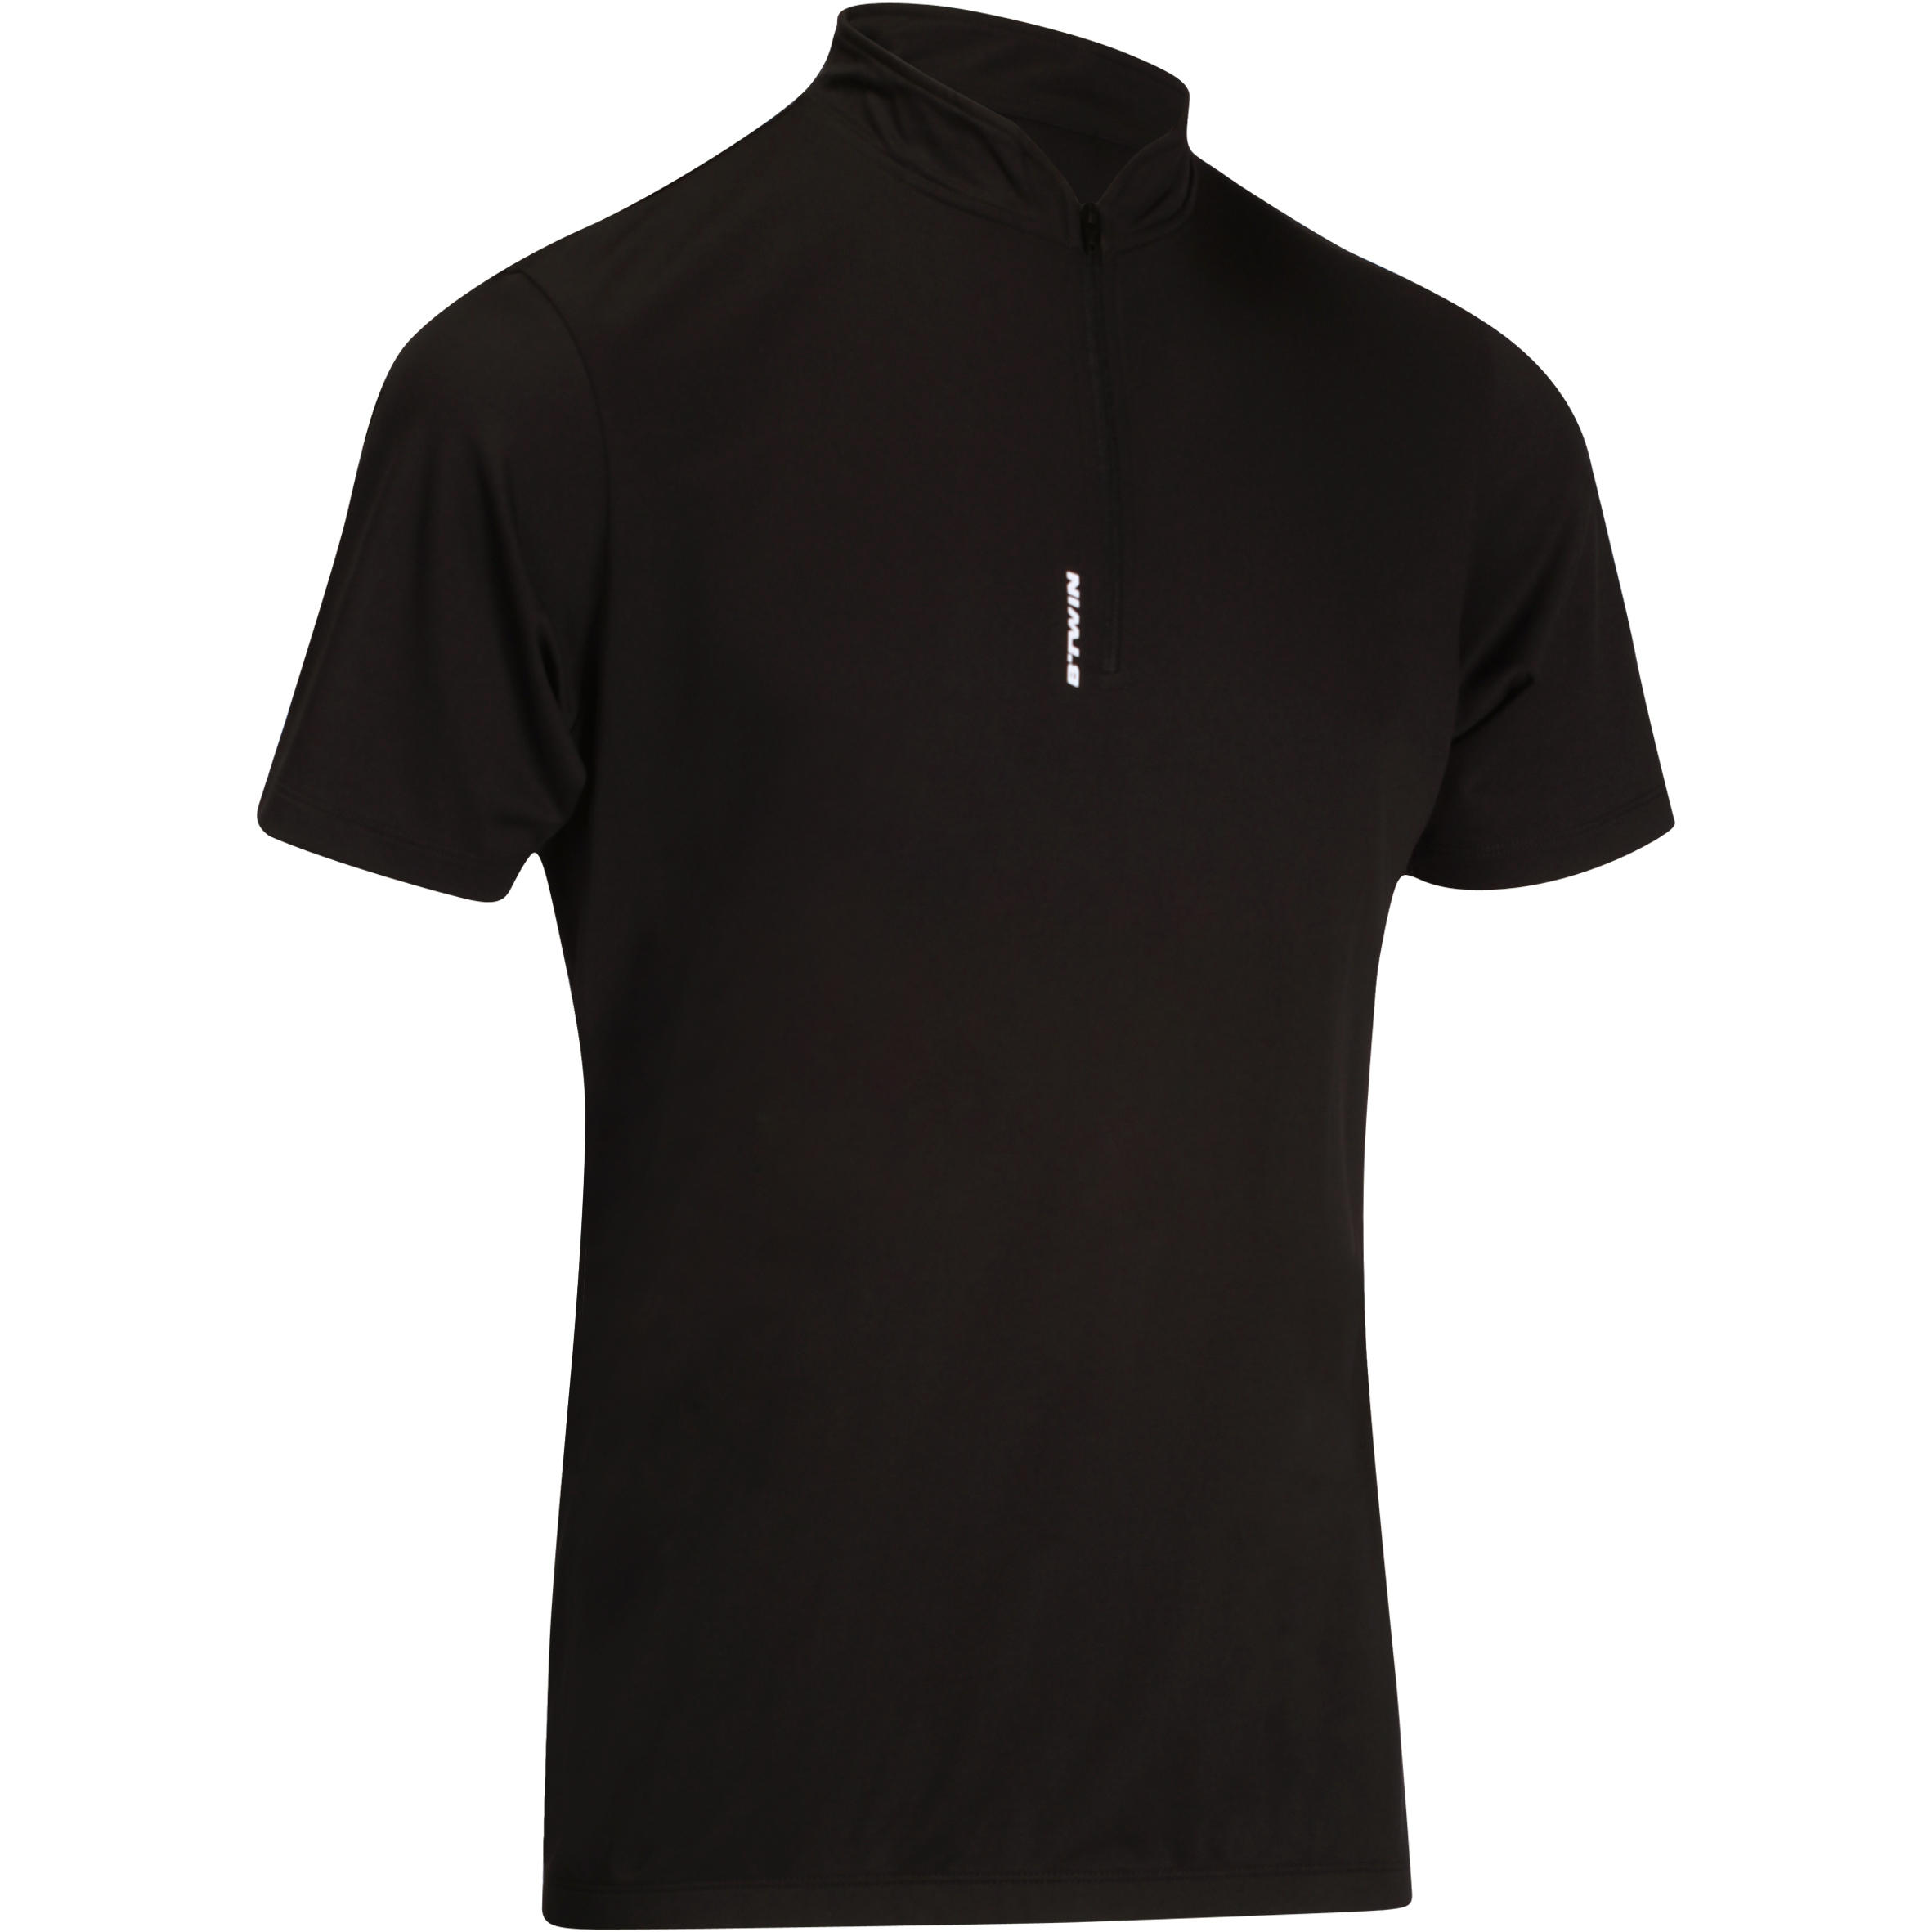 100 Short-Sleeved Cycling Jersey - Black